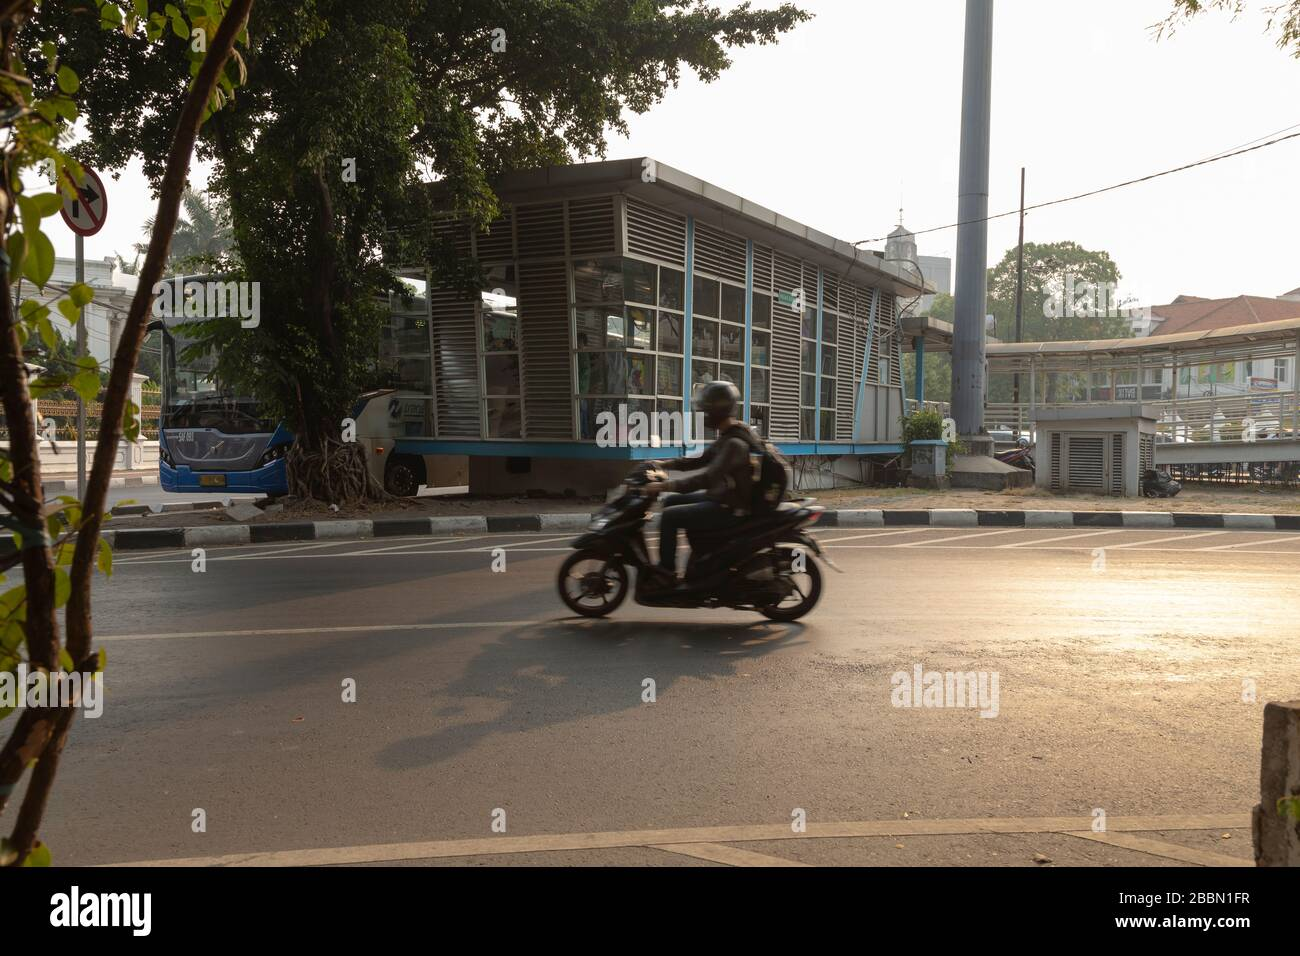 Jakarta, Indonesia - July 13, 2019: A motorcyclist passes in front of the bus stop from the TransJakarta public transport system. Stock Photo